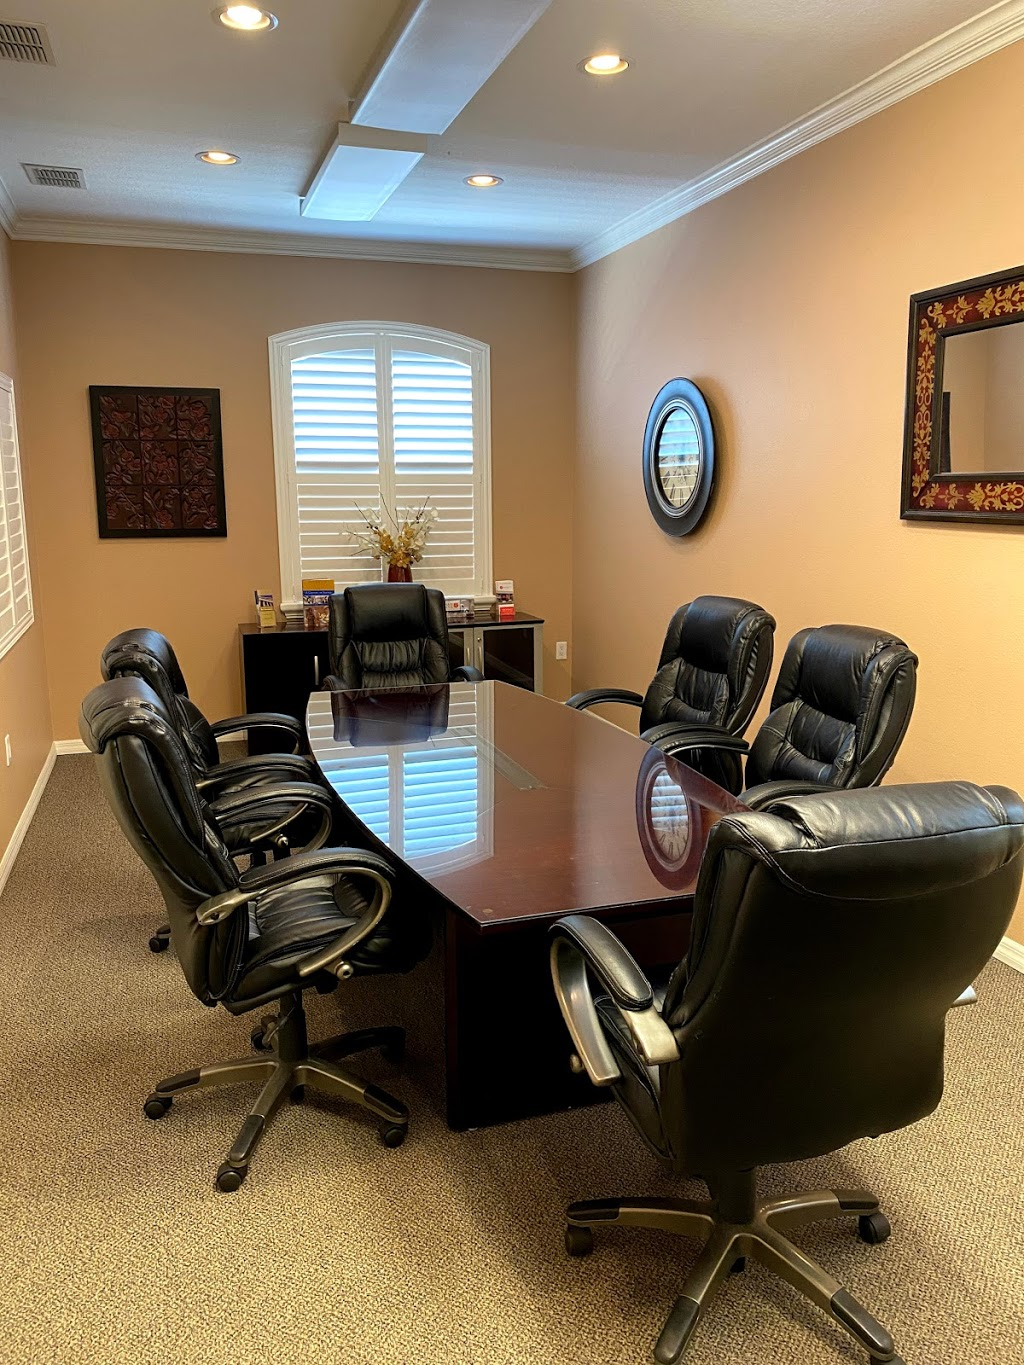 Aman Law Firm - lawyer  | Photo 2 of 7 | Address: 282 Crystal Grove Blvd, Lutz, FL 33548, USA | Phone: (813) 265-0004